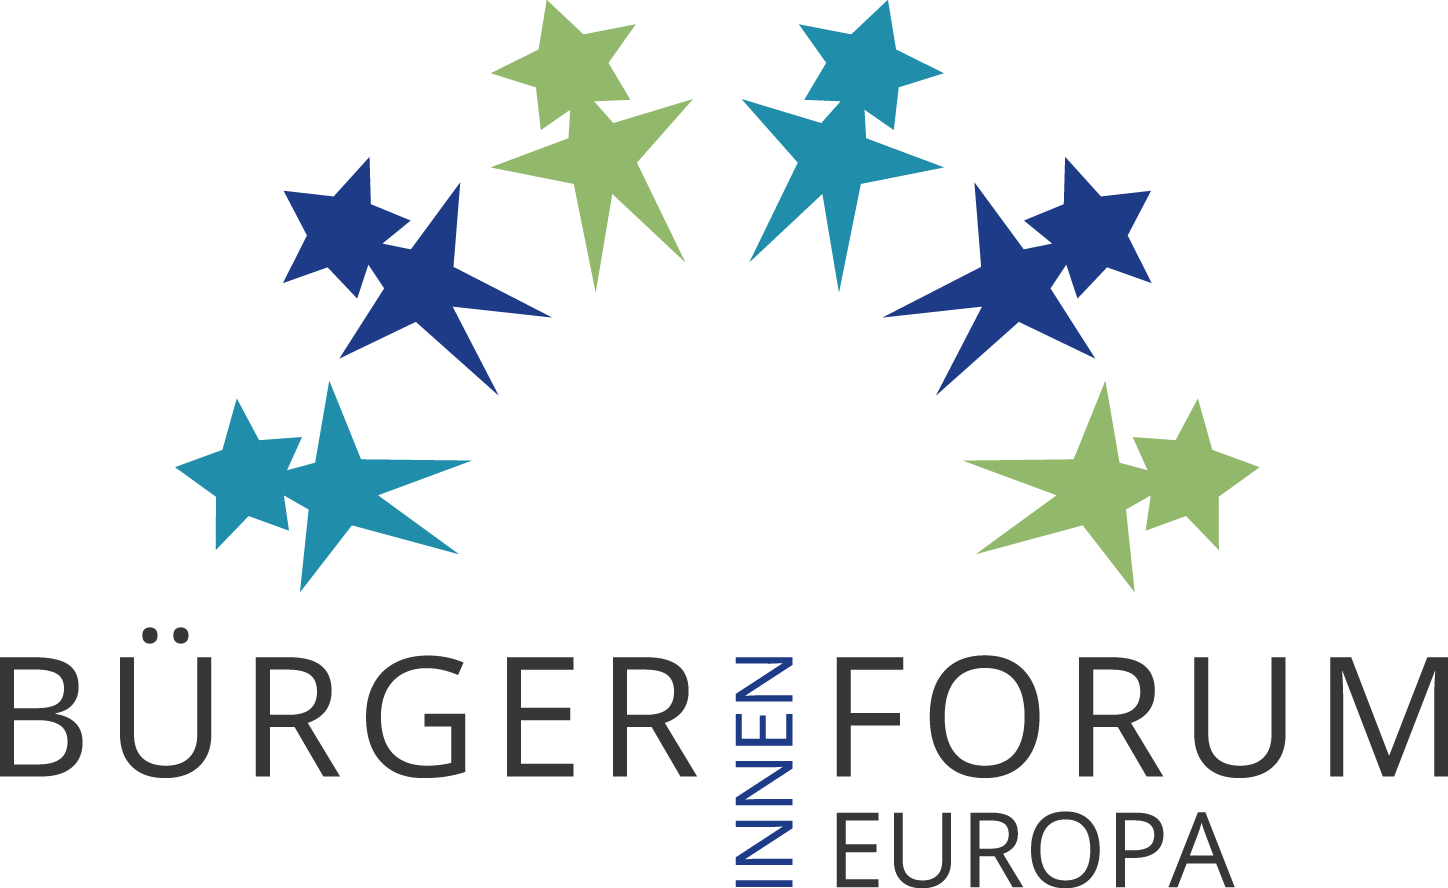 Bürgerforum Europa